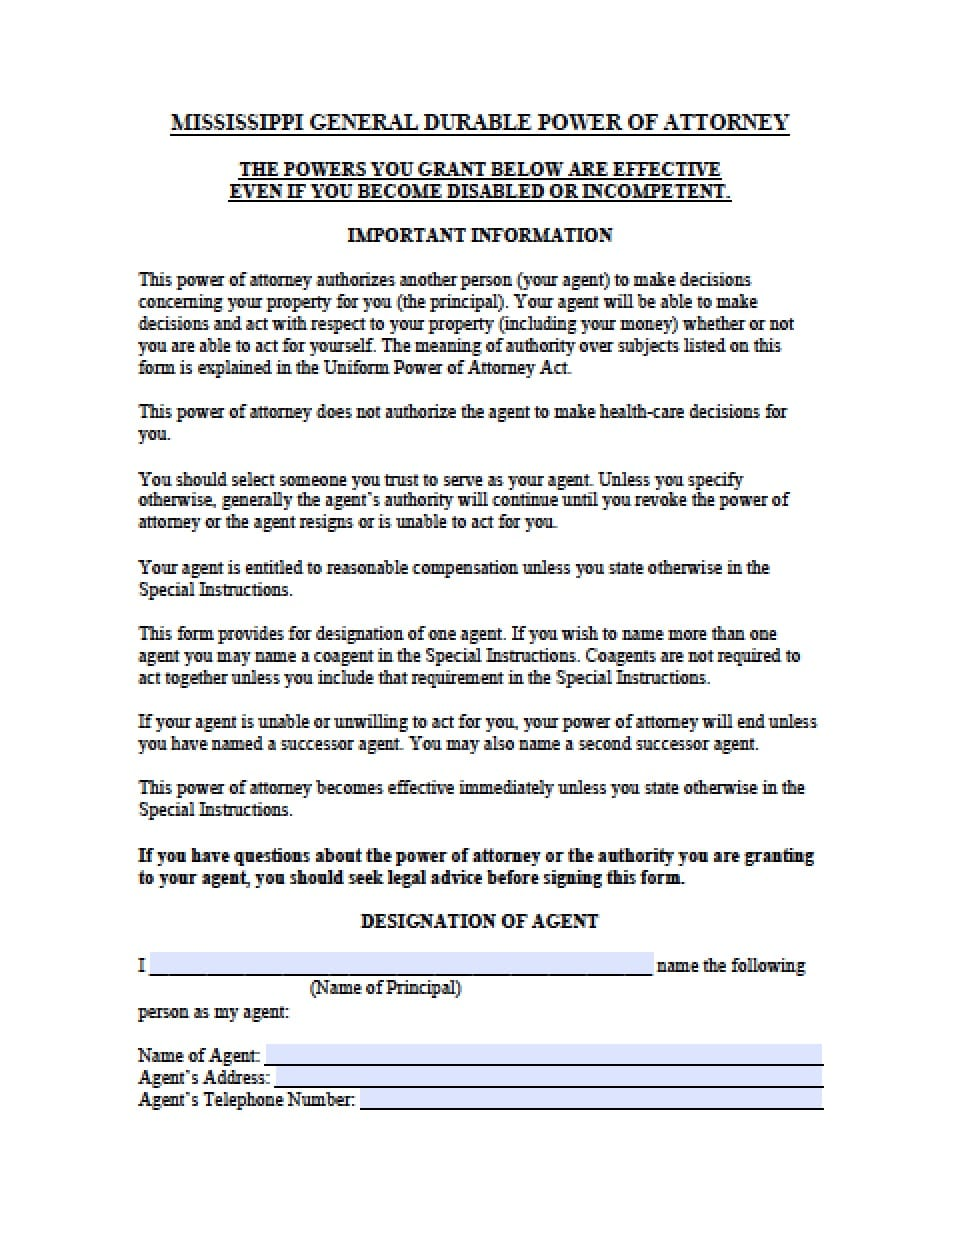 Power of attorney form forex